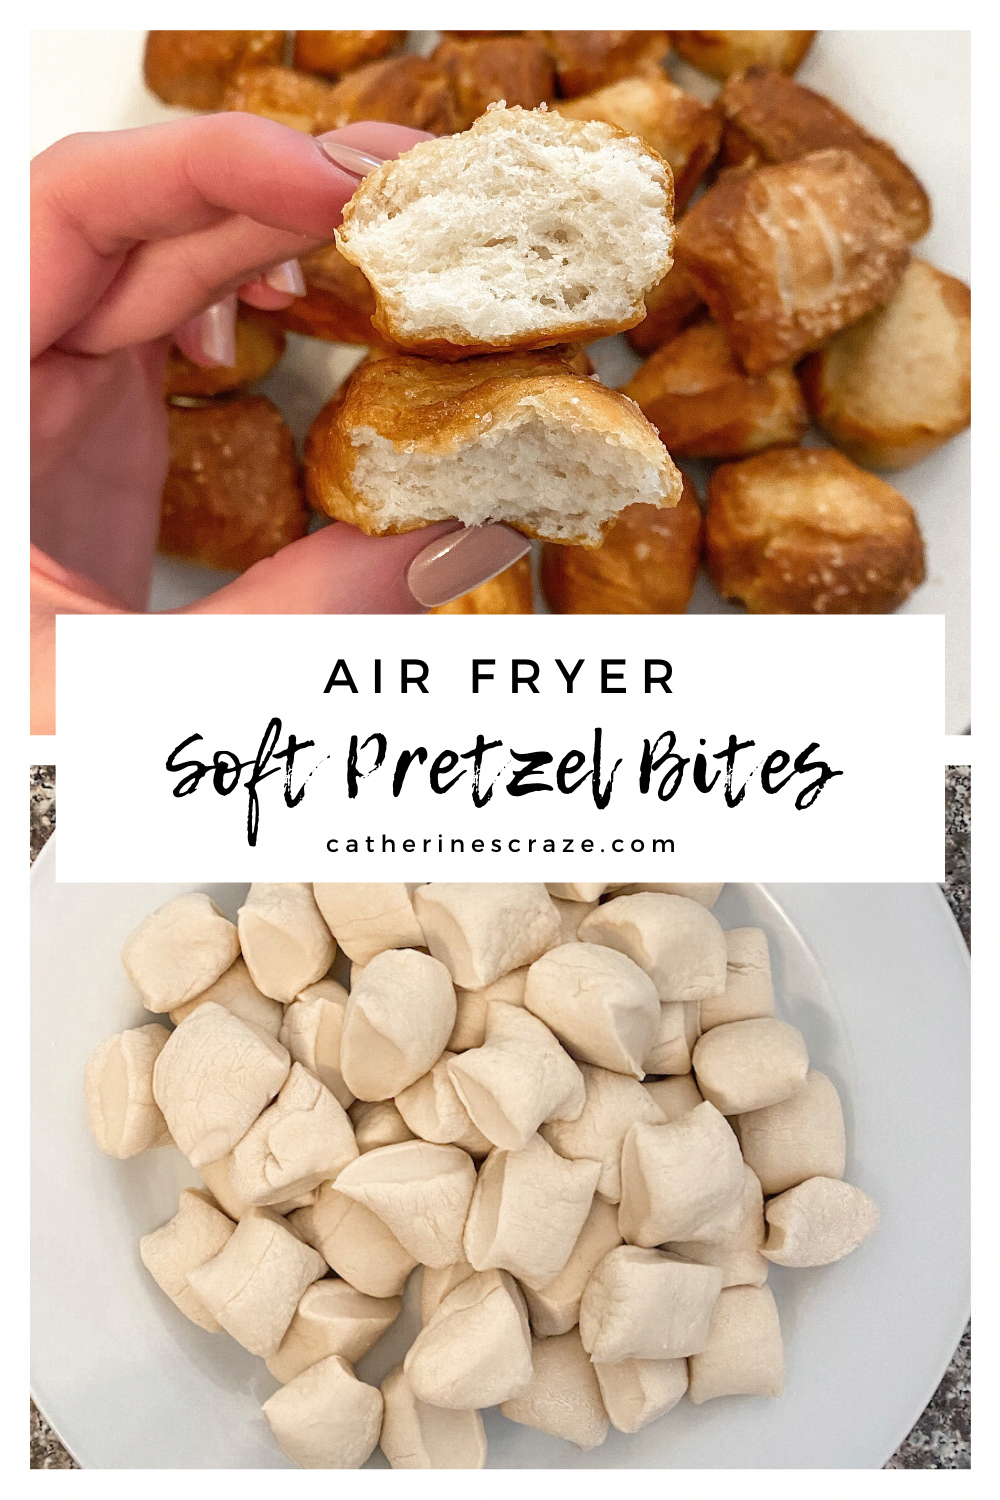 air fryer recipes low carb in 2020 Air fryer recipes